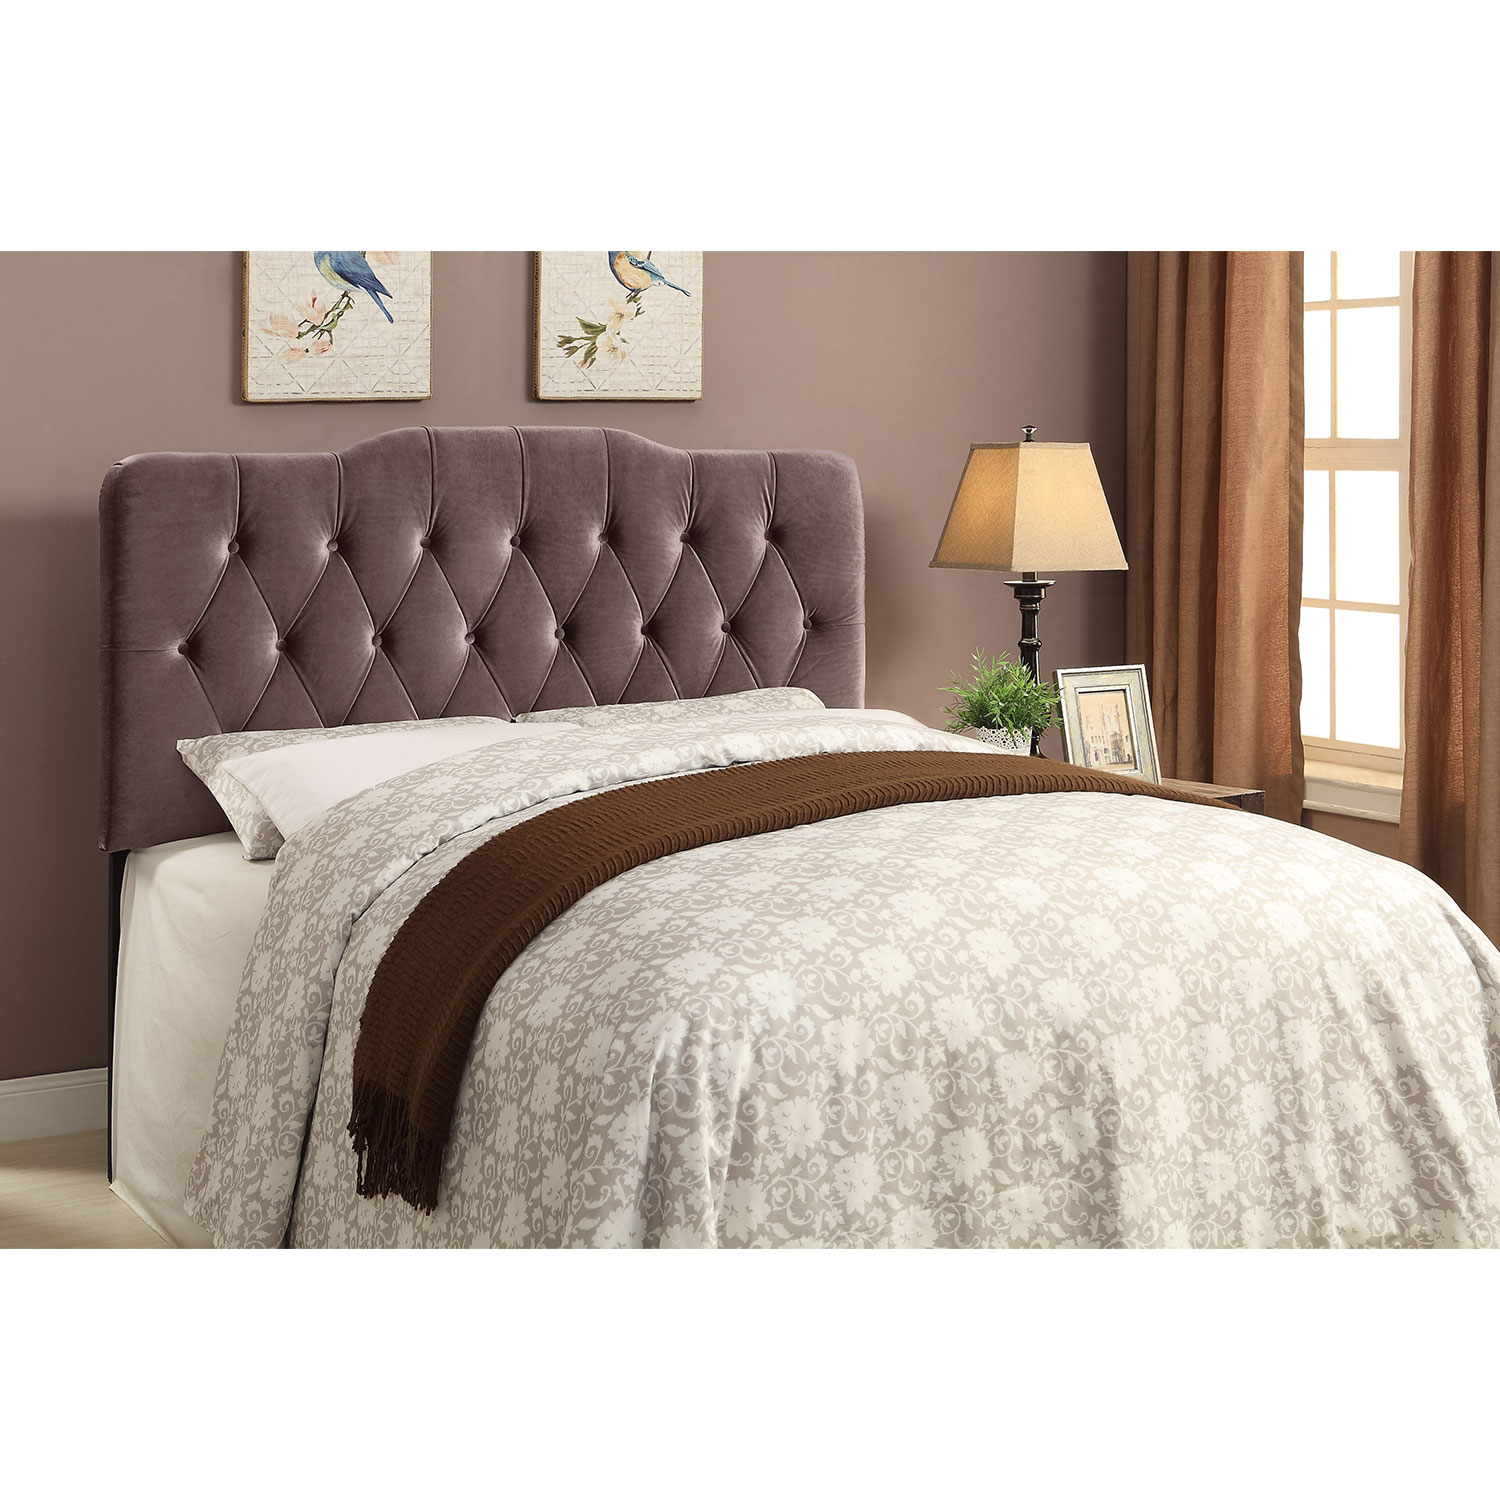 Quinn King Headboard - Gray